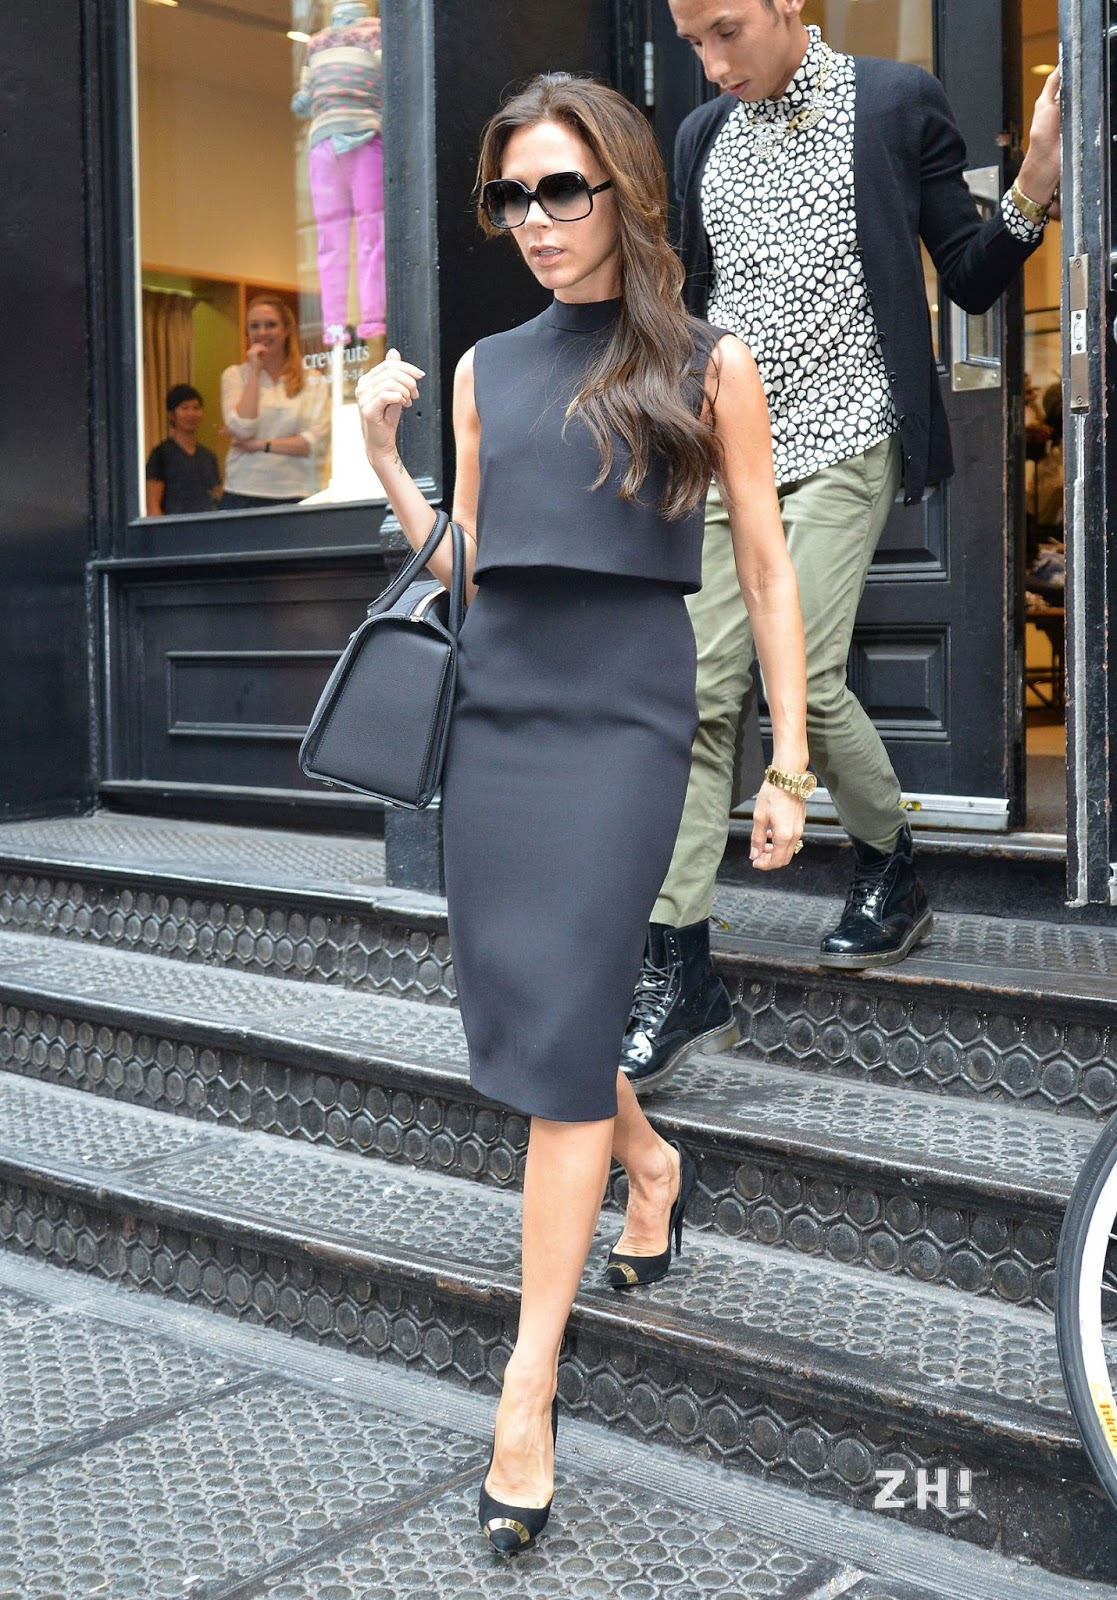 Wdw fashion and style victoria beckham